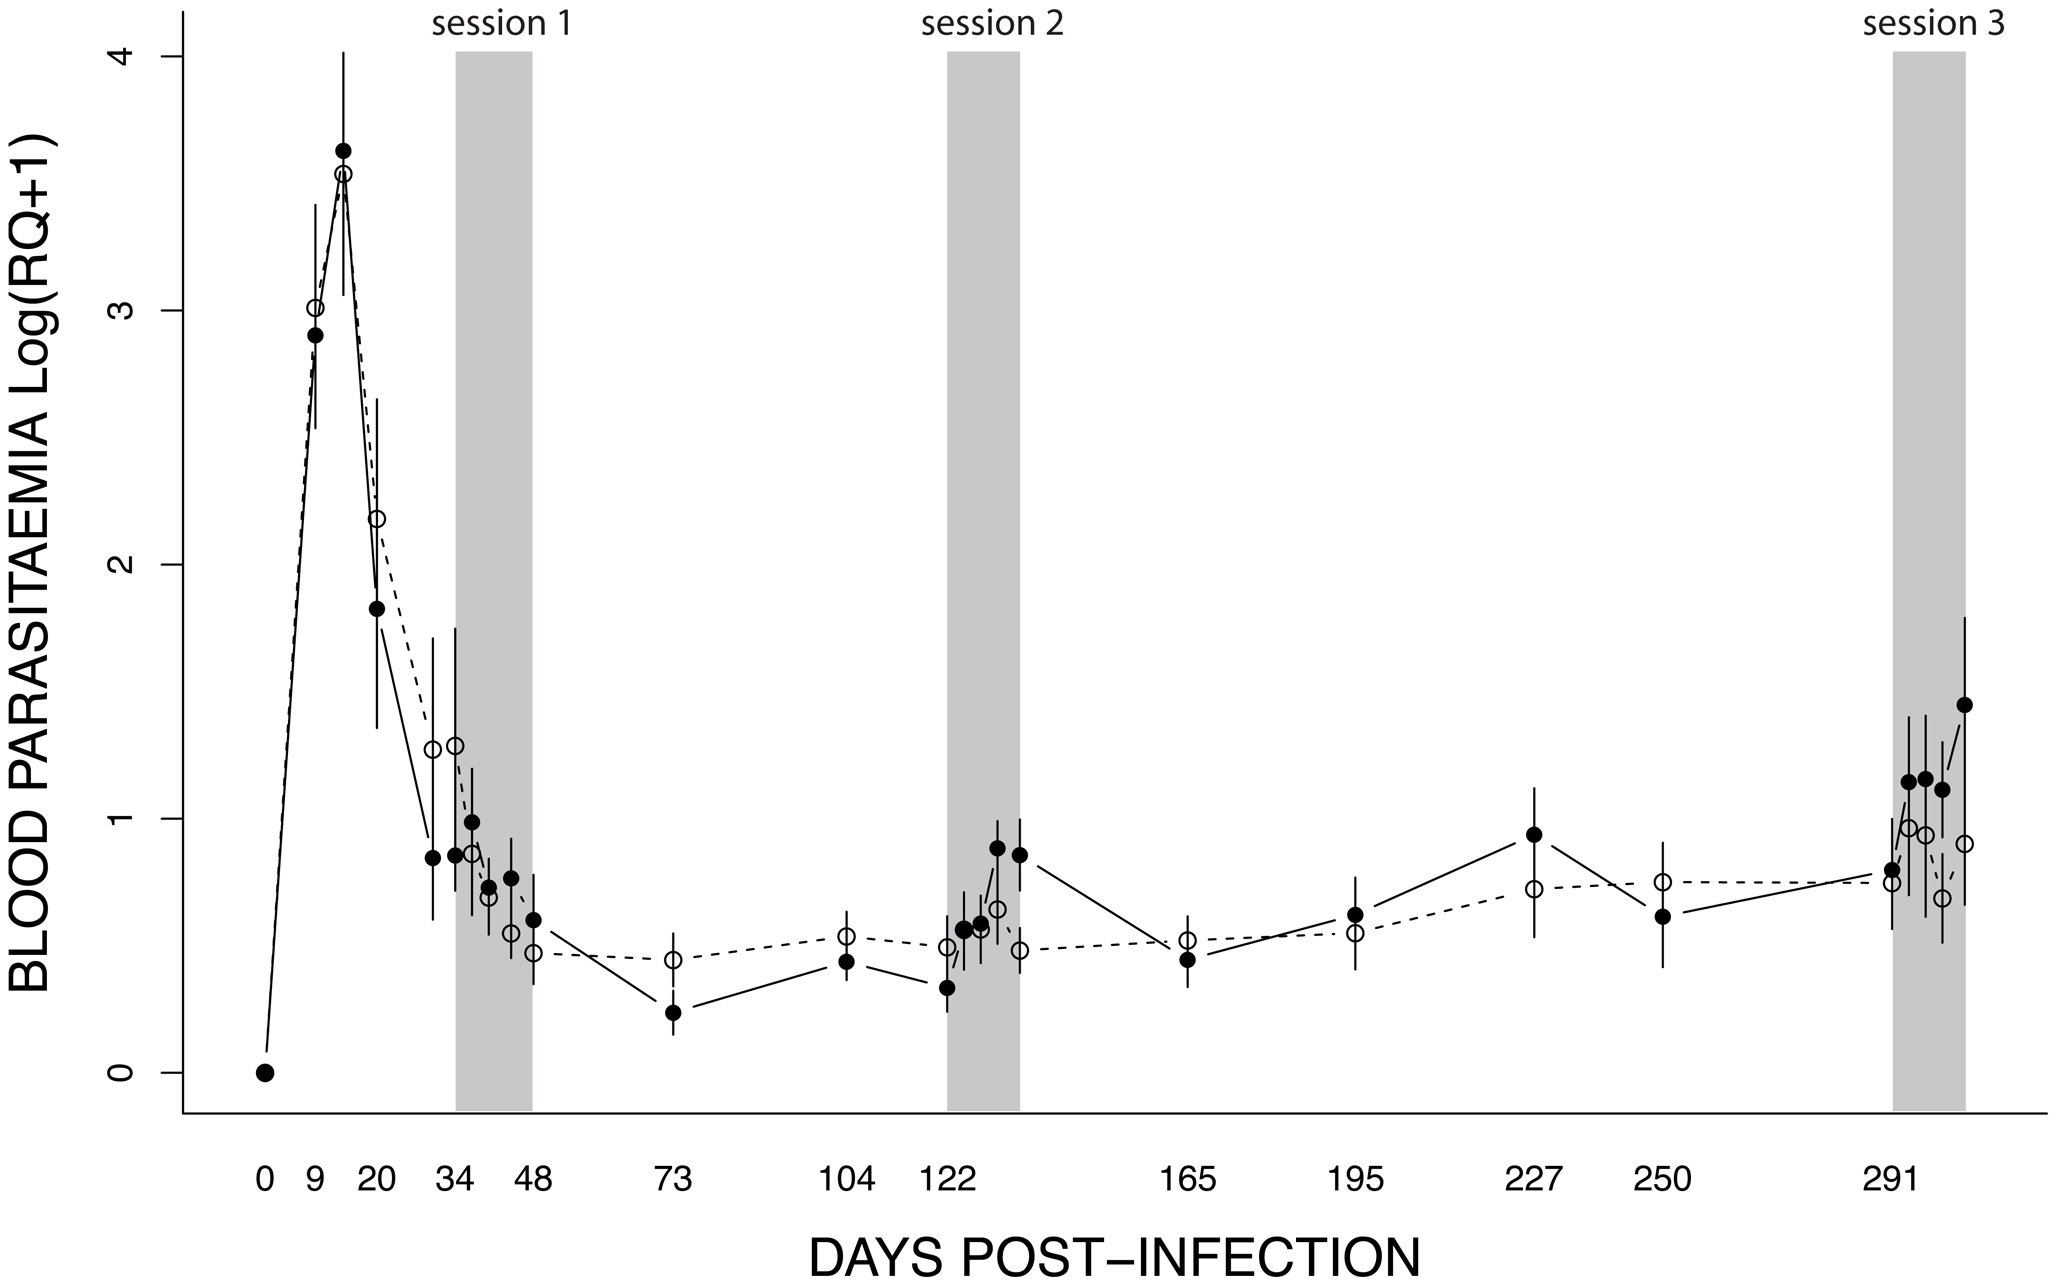 Dynamics of blood parasitaemia (Log(RQ+1), mean ± s.e.) of <i>Plasmodium relictum</i> (lineage SGS1) in birds that were either unexposed (open circles, dashed line) or exposed to mosquito bites (filled circles, solid line).